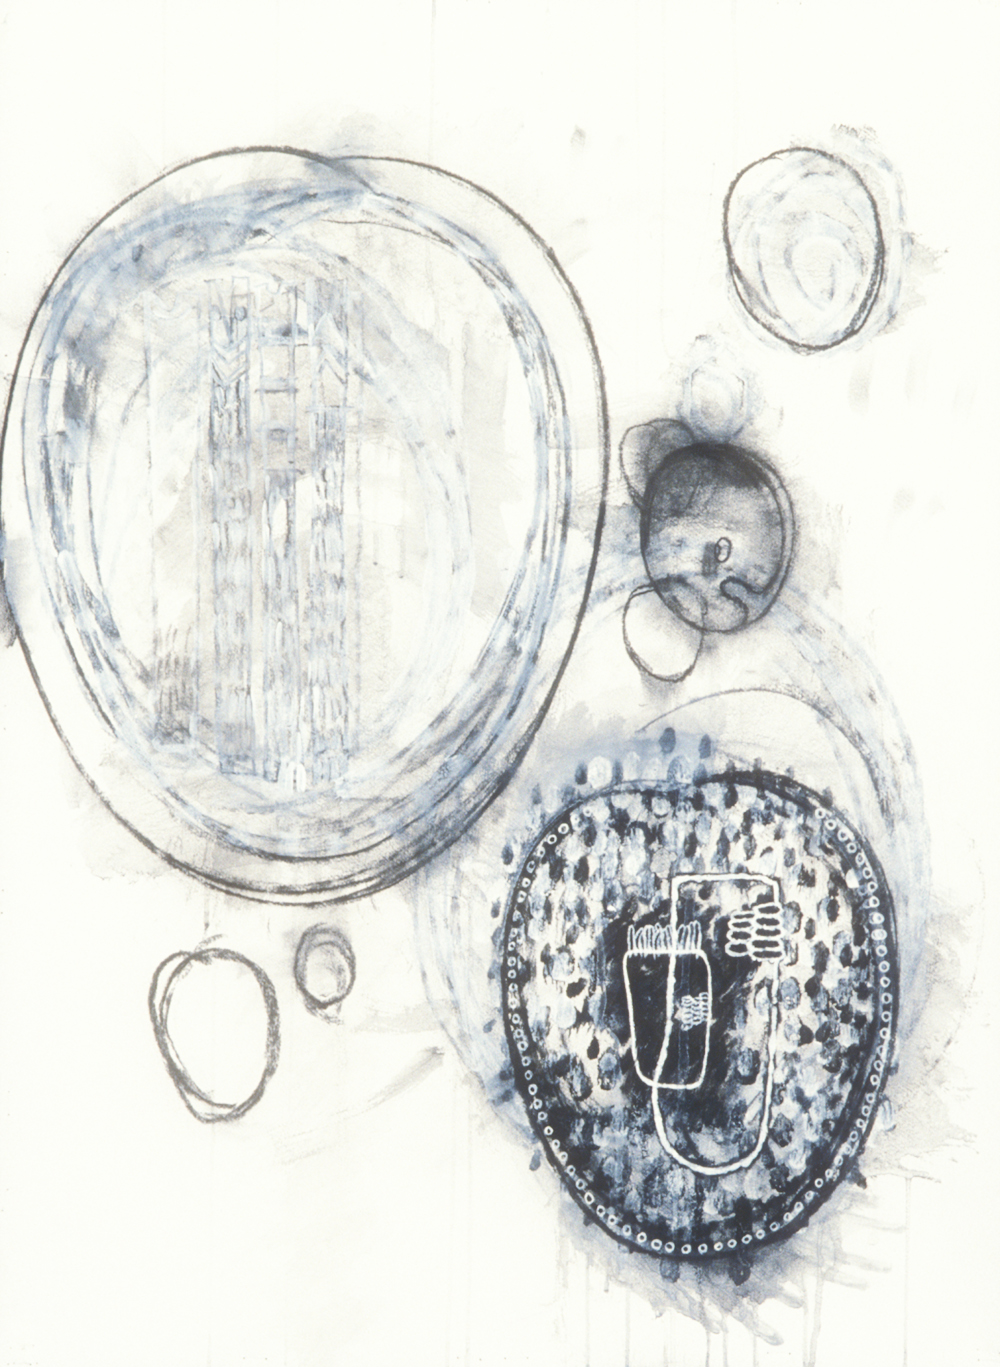 Elemental 3  , 1989, mixed media on paper, 29.5 x 21.5 in.